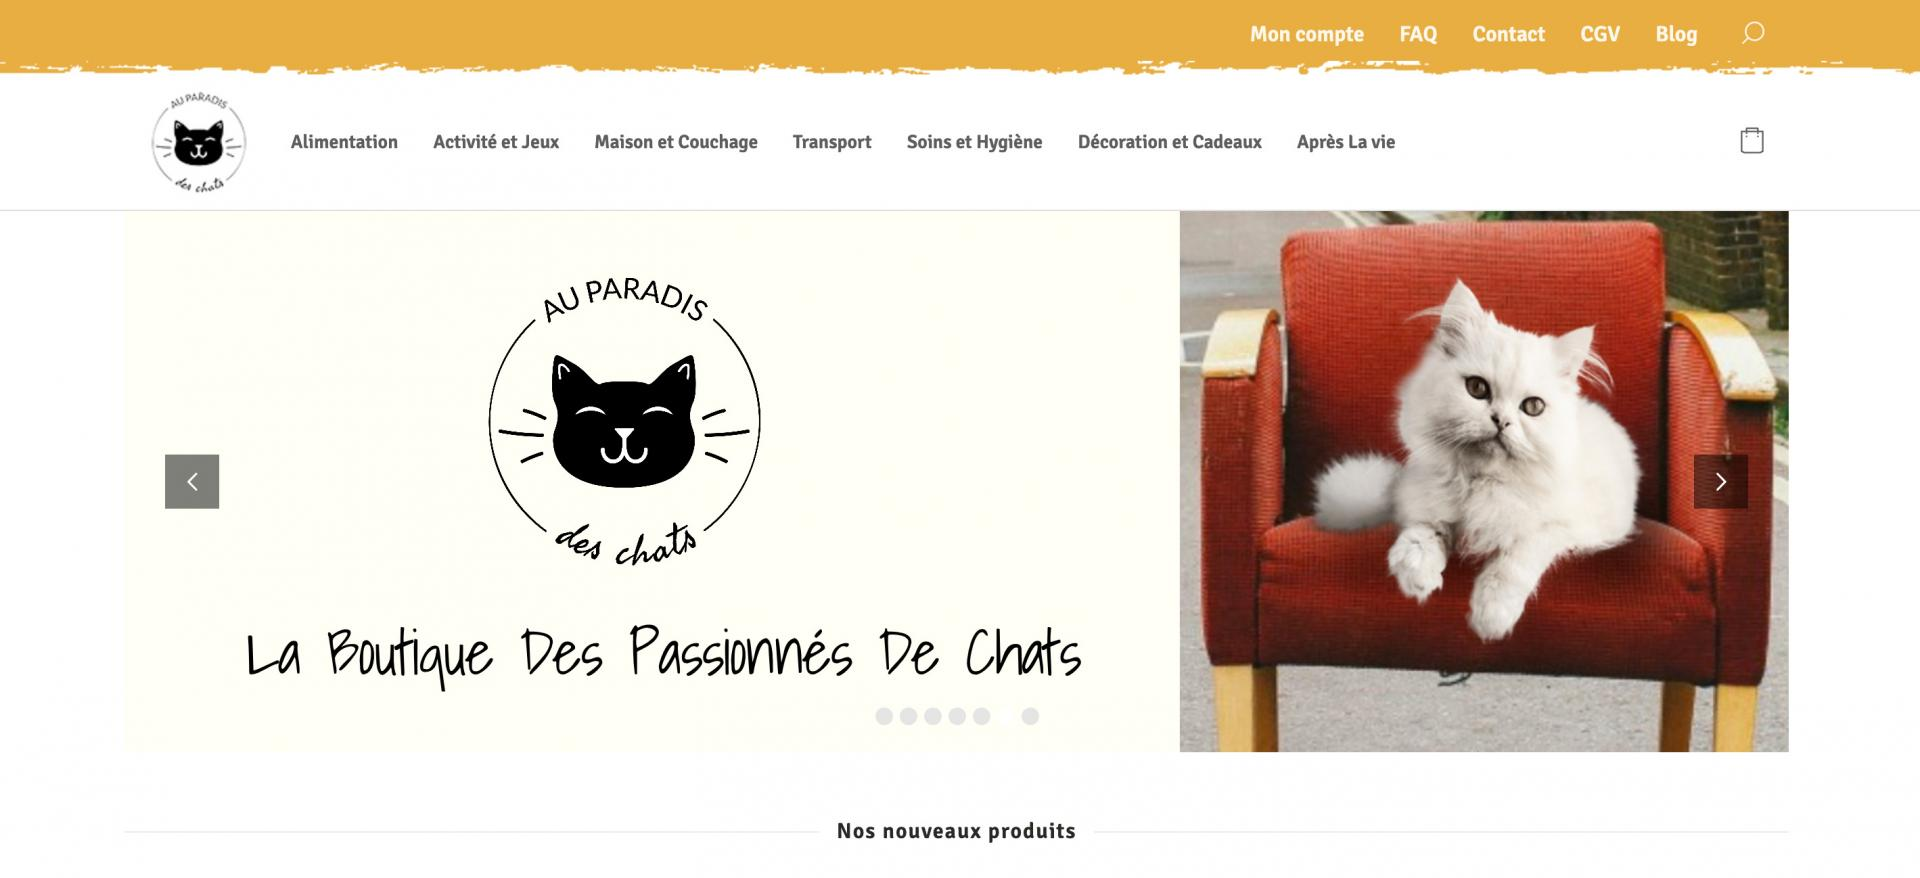 Screenshot 2020 04 11 au paradis des chats 1